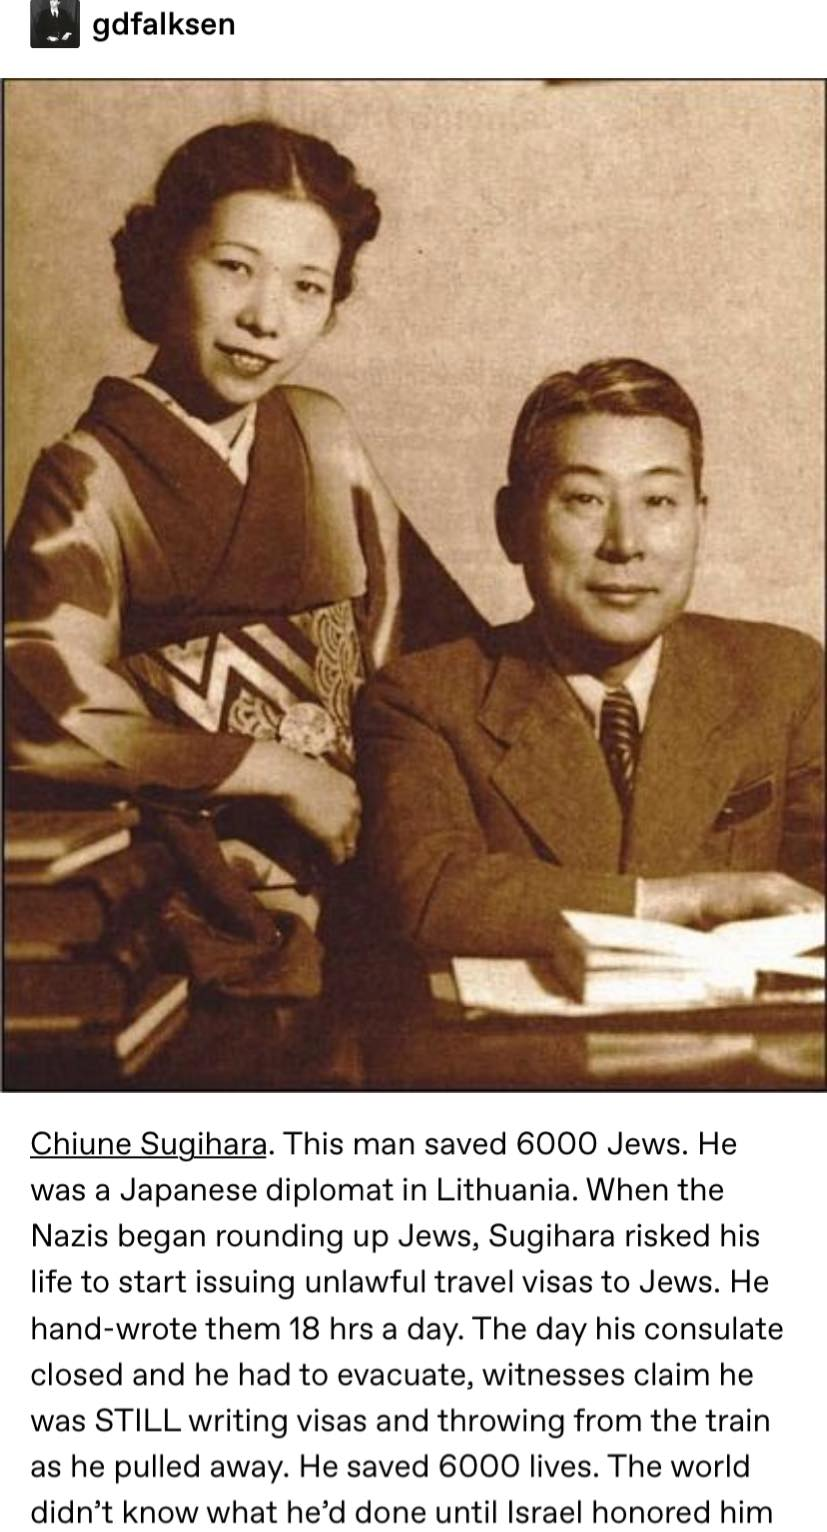 Chiune Sugihara Saved 6000 Jews